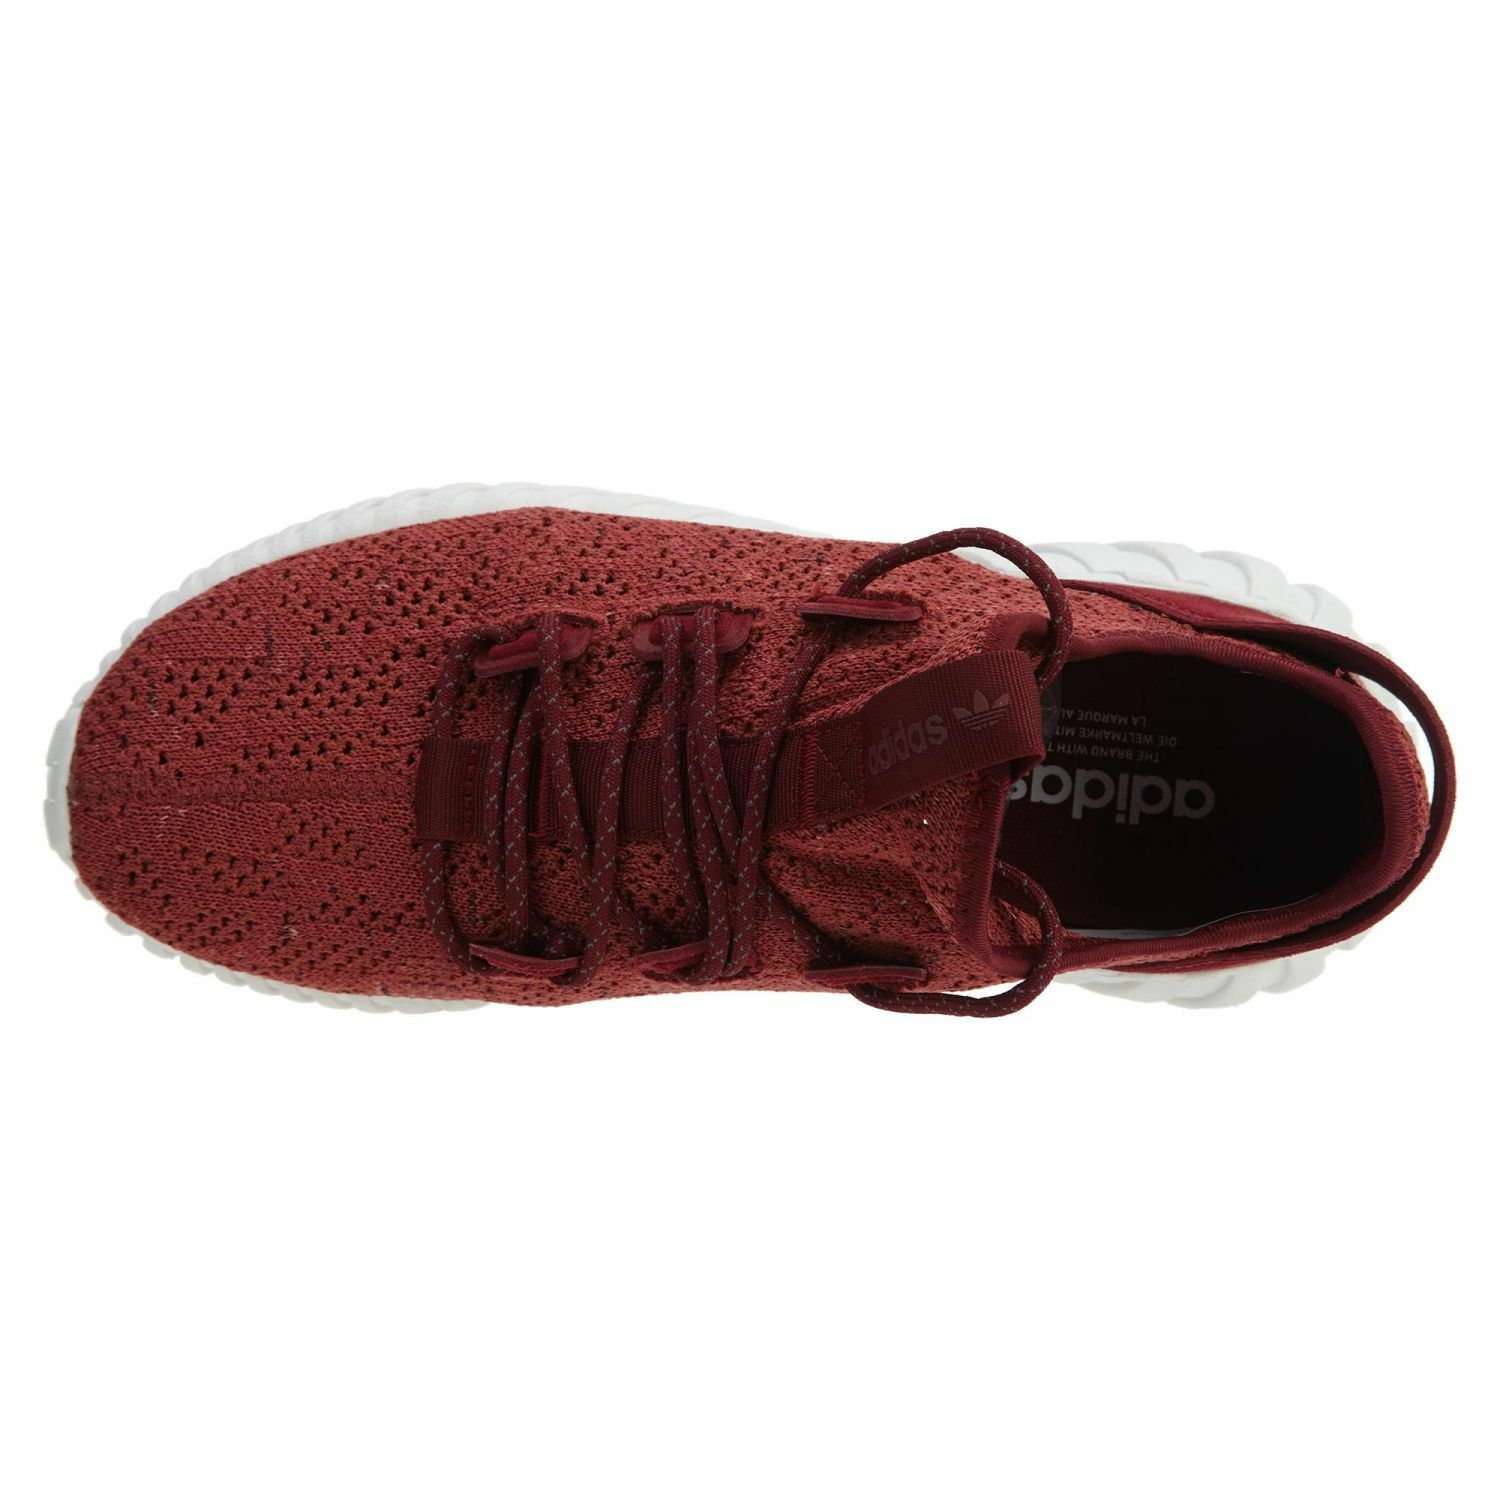 le pk   by3560 chaussures chaussettes adidas tubulaire primeknit mystère rouge chaussures by3560 taille 8 b63363